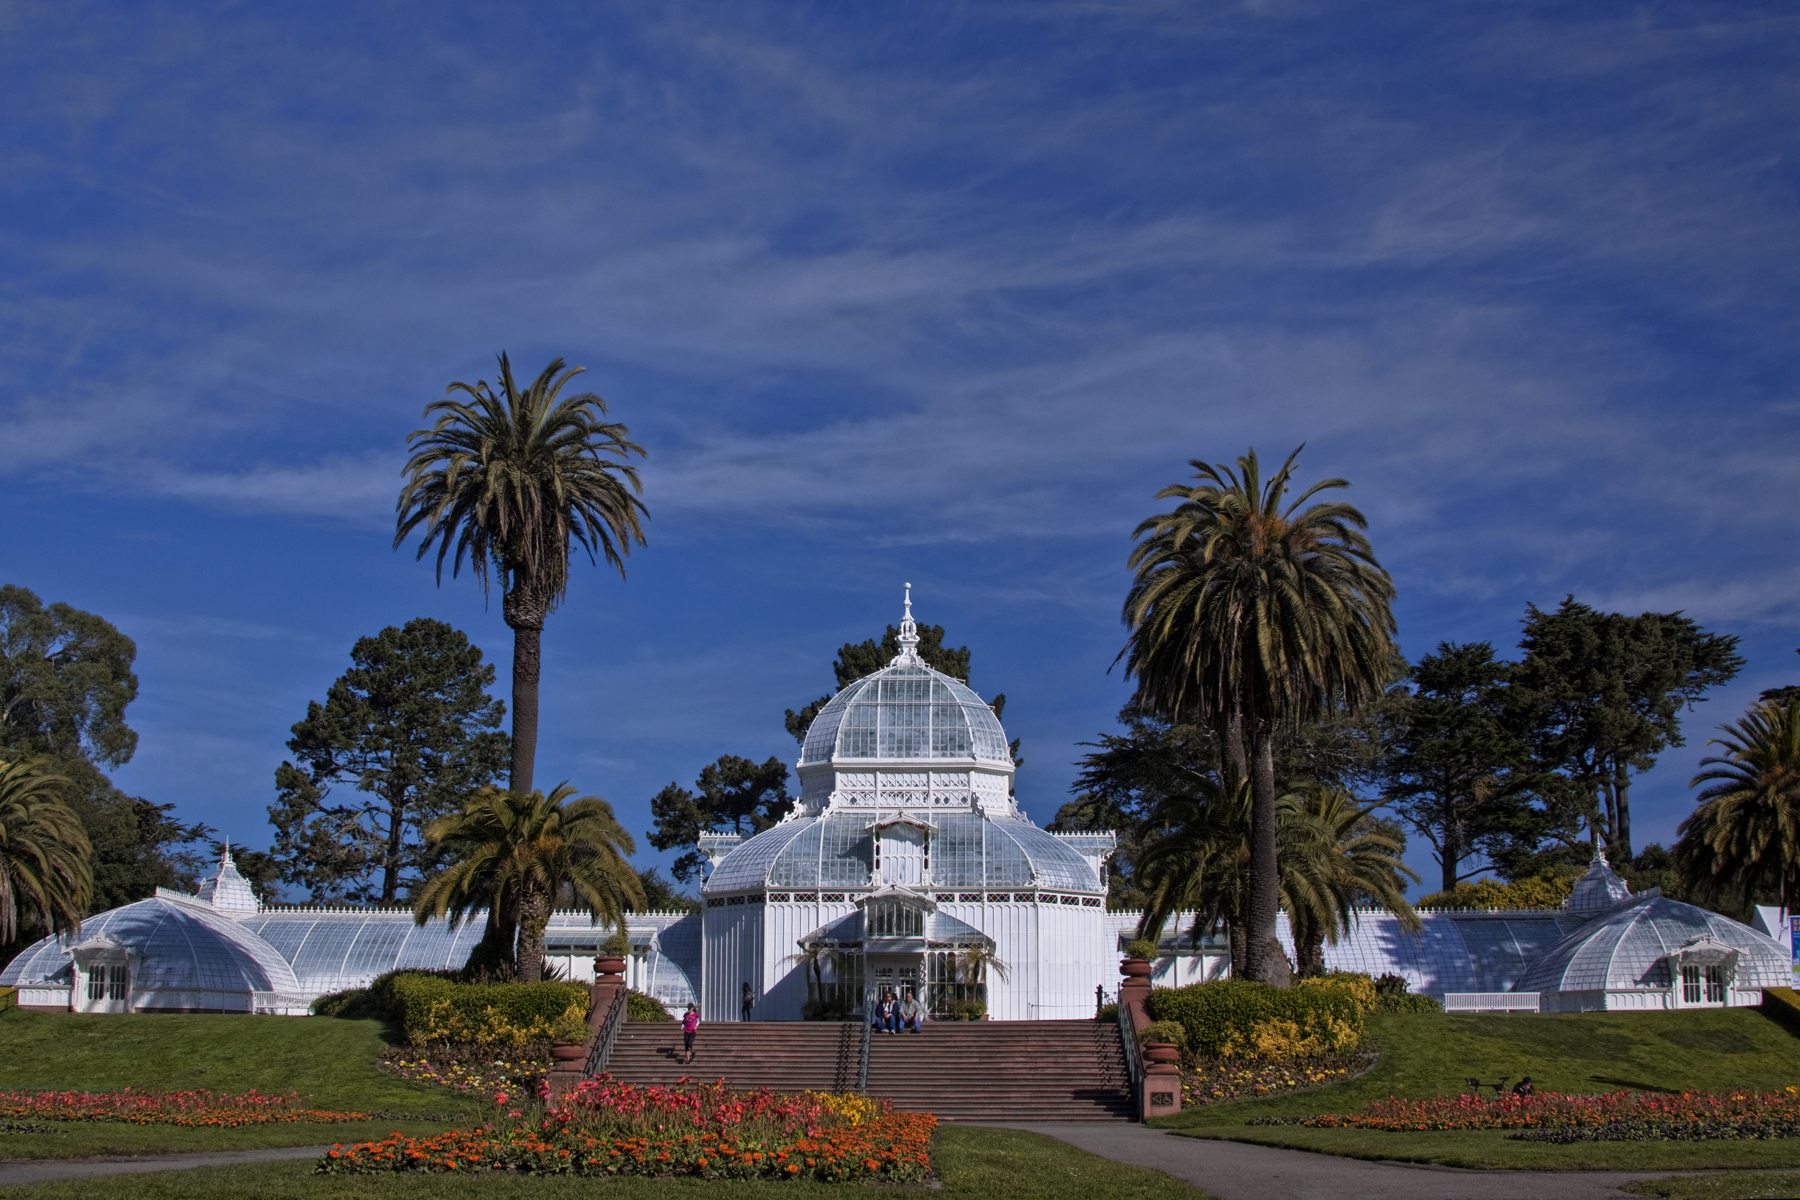 The nearby Conservatory of Flowers is a colorful meeting spot in Golden Gate Park.